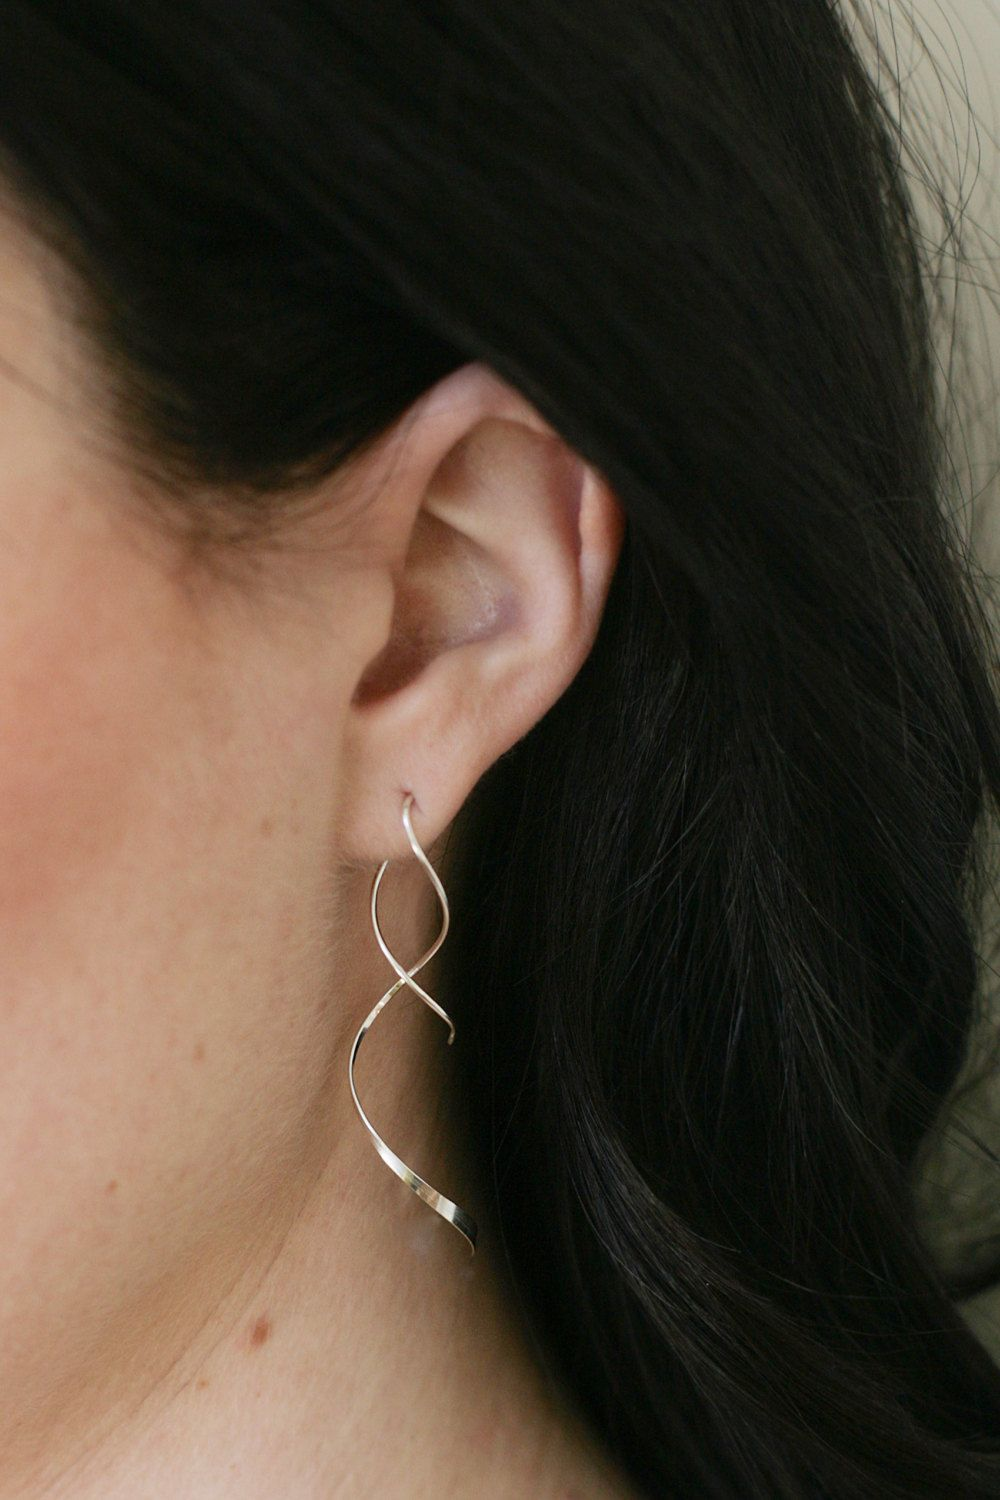 Pear piercing ideas  These beautiful earrings are a great way to add an elegant look to